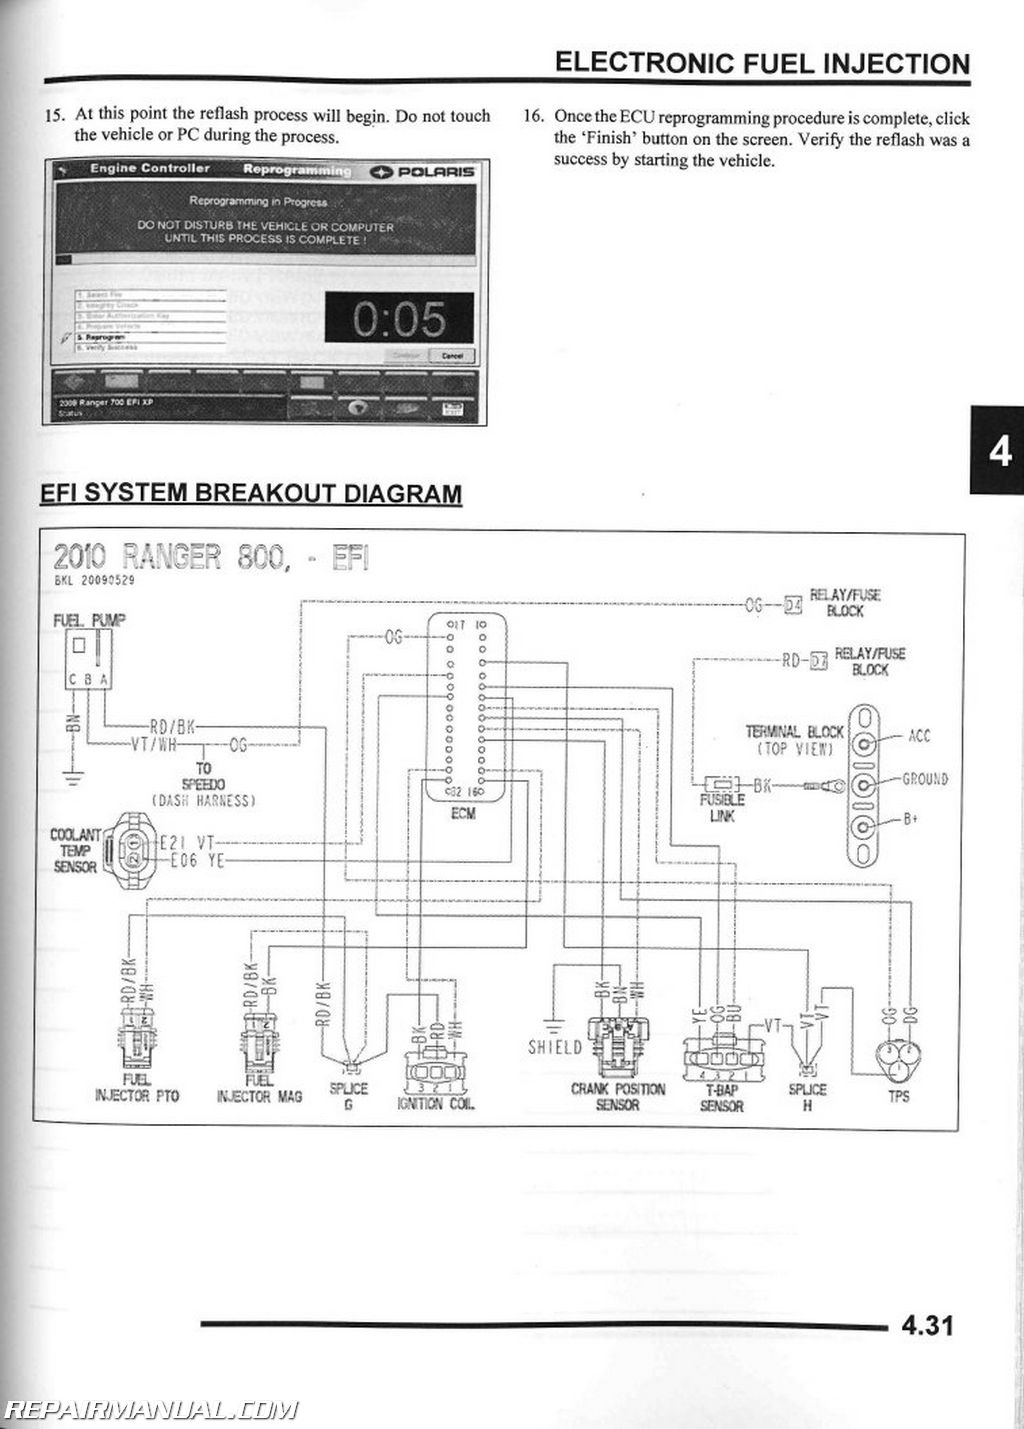 2011 polaris ranger xp wiring diagram wiring library 2004 Polaris Ranger Wiring Diagram 2011 polaris ranger 800 xp wiring diagram cute wiring diagram for polaris ranger 800 xp